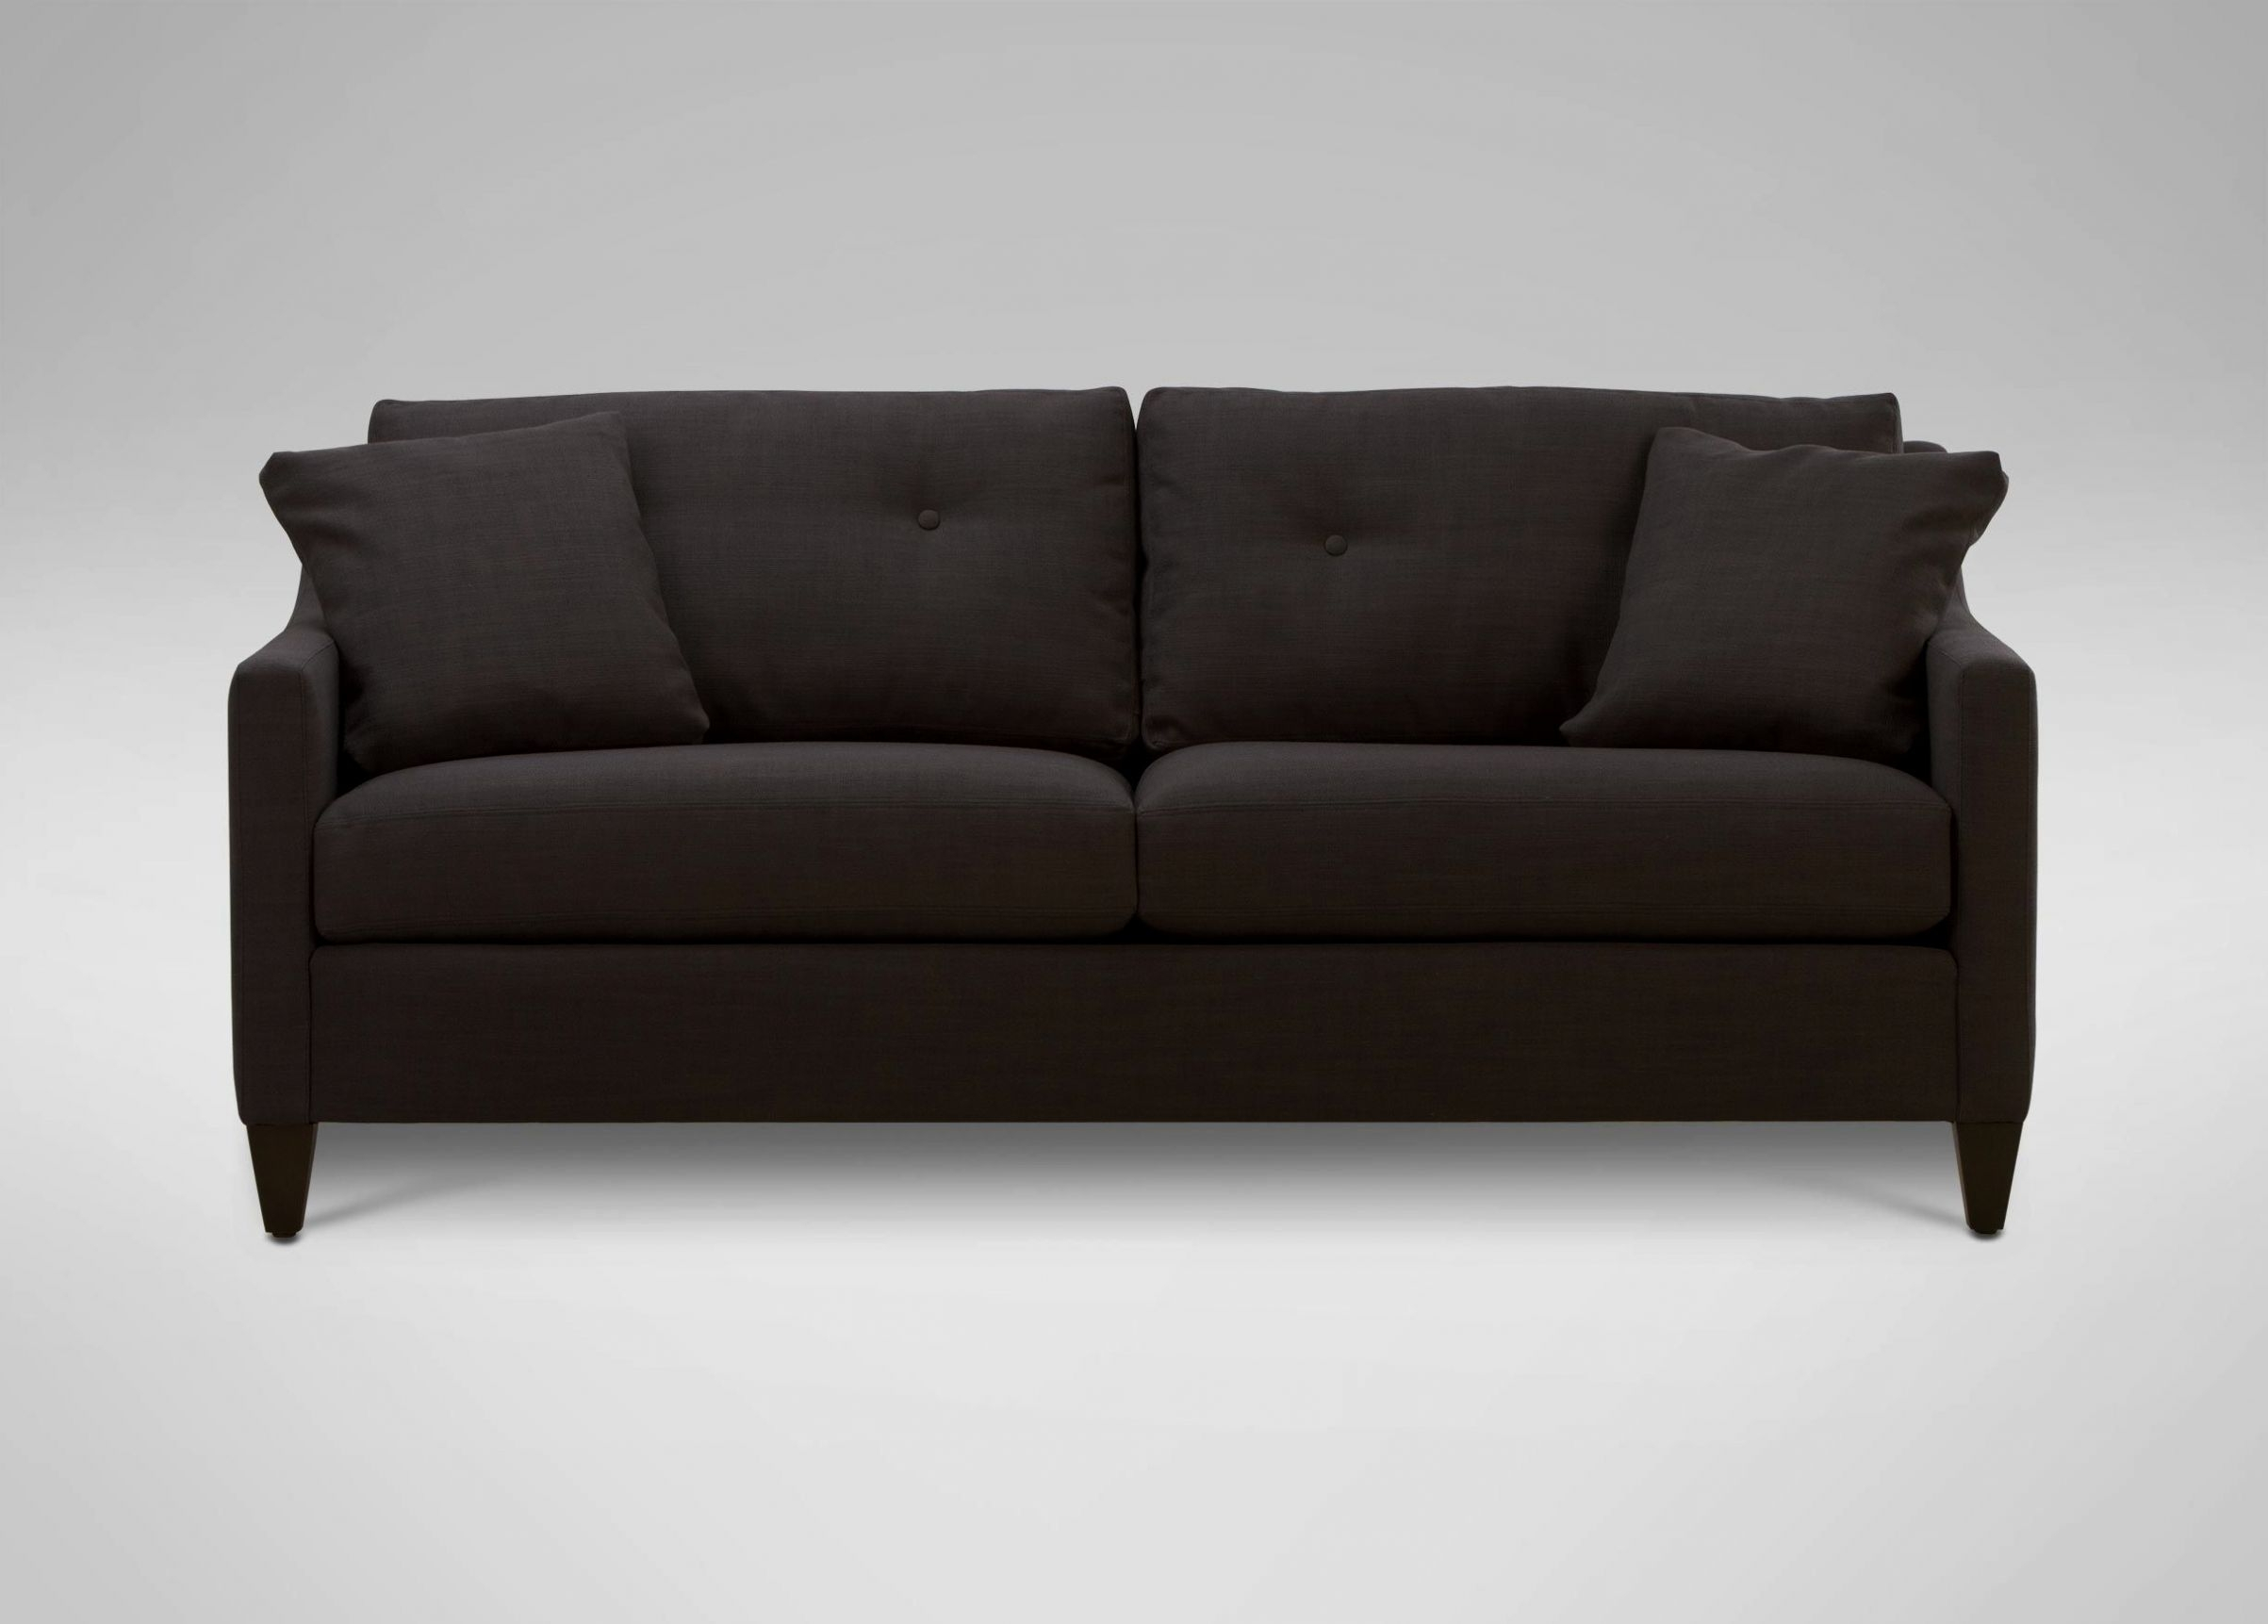 Lovely 200 Sofas Idea #4 Cheap Sectional Sofas Under 200 15 With inside Sectional Sofas Under 200 (Image 10 of 10)